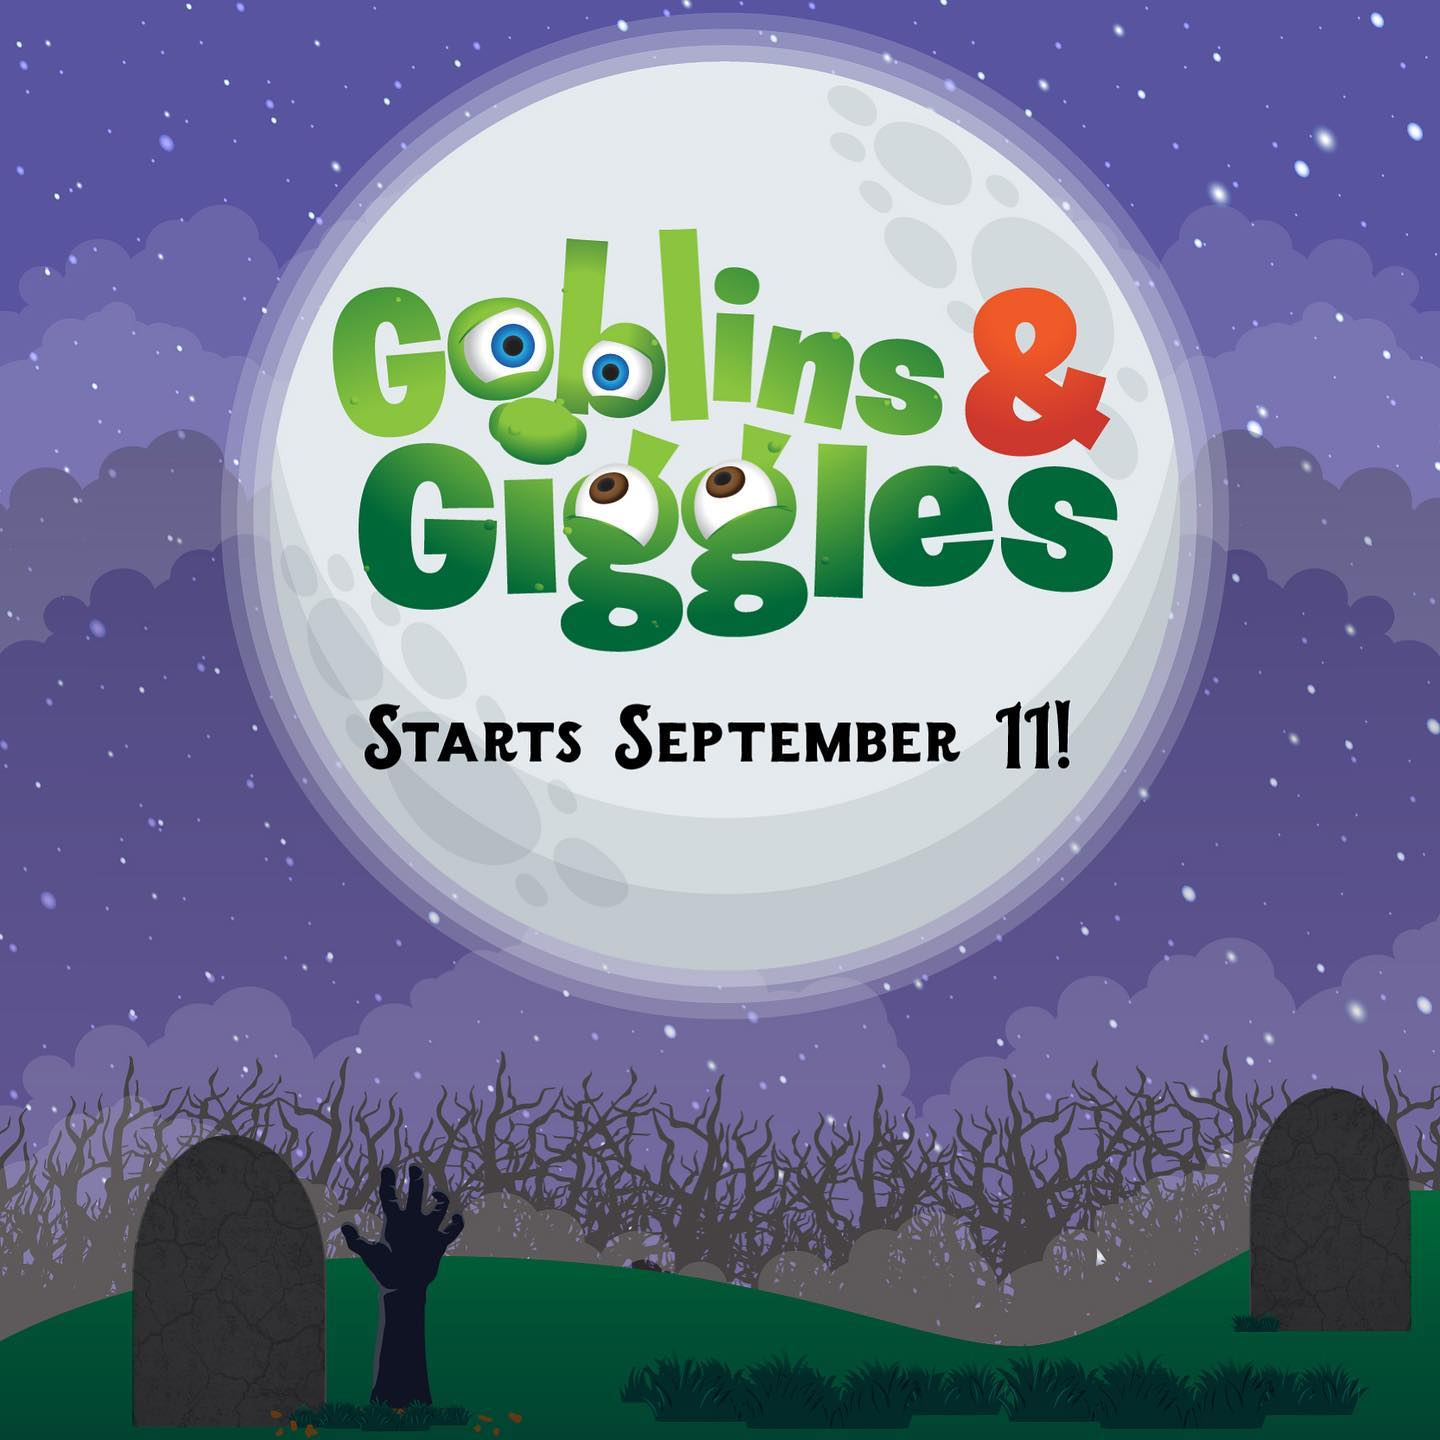 Goblins & Giggles, Gaylord Texan